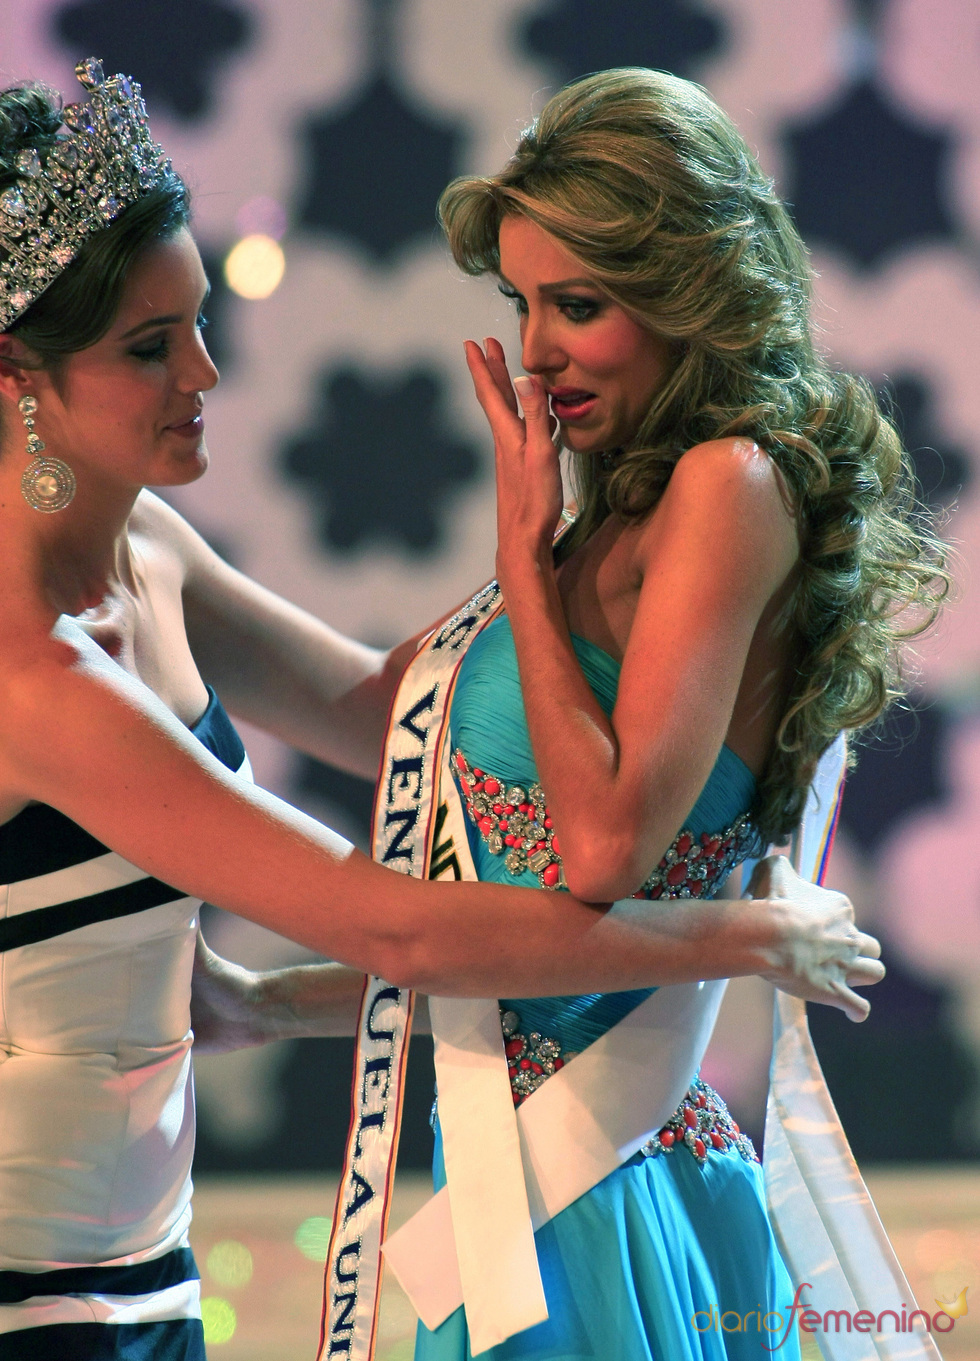 Image result for misses llorando de emoción